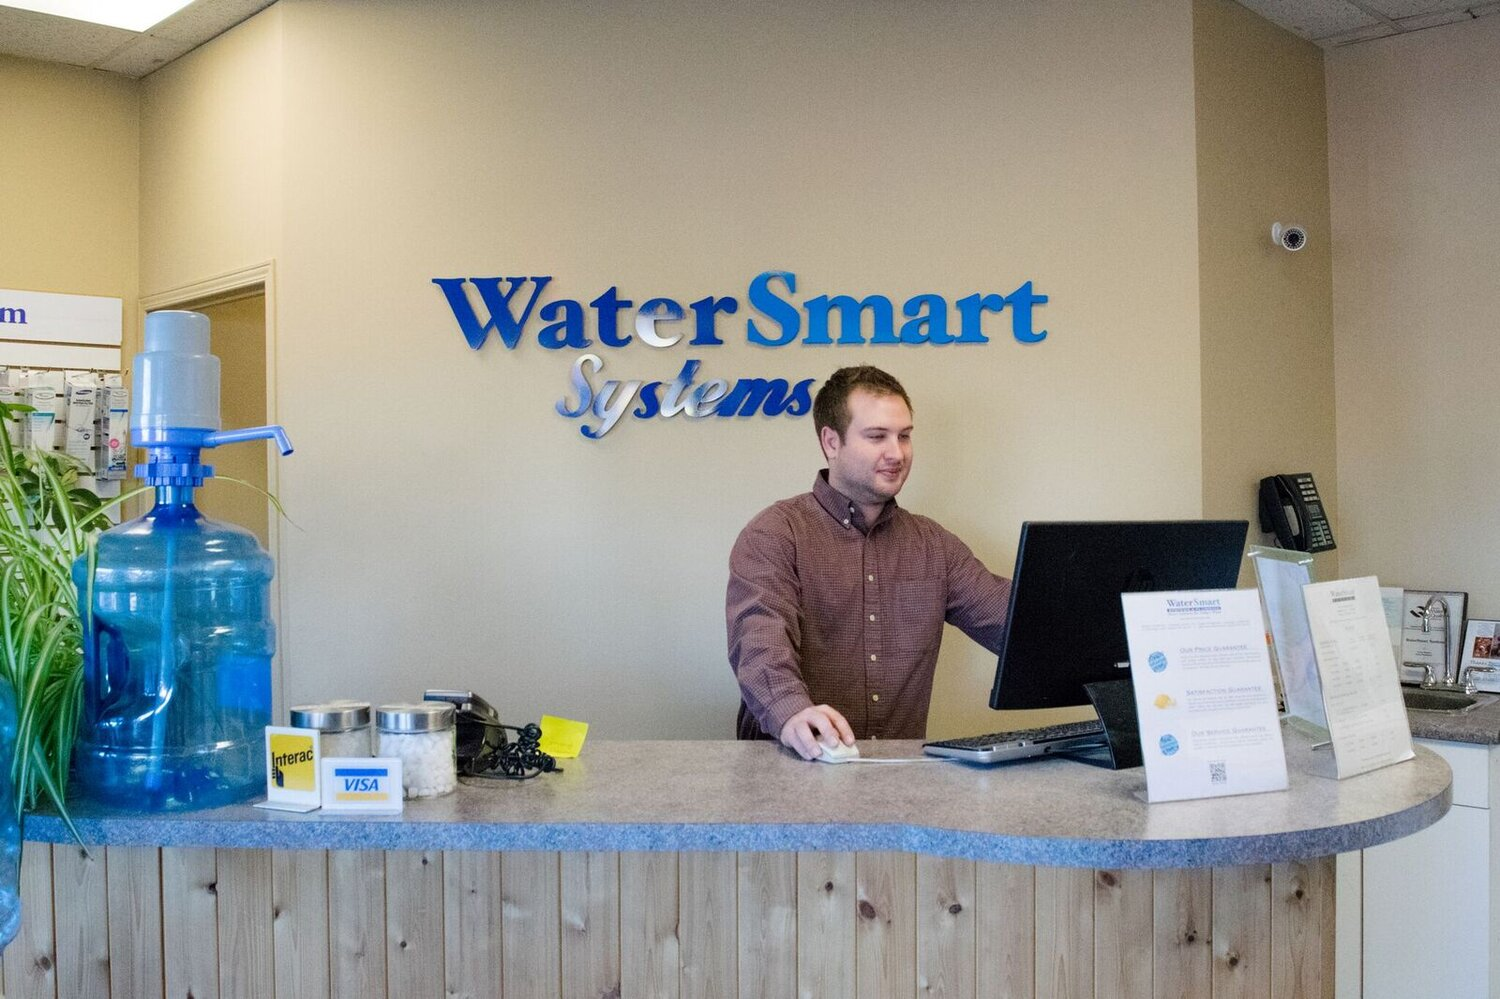 Smart Solutions For Today's Water -